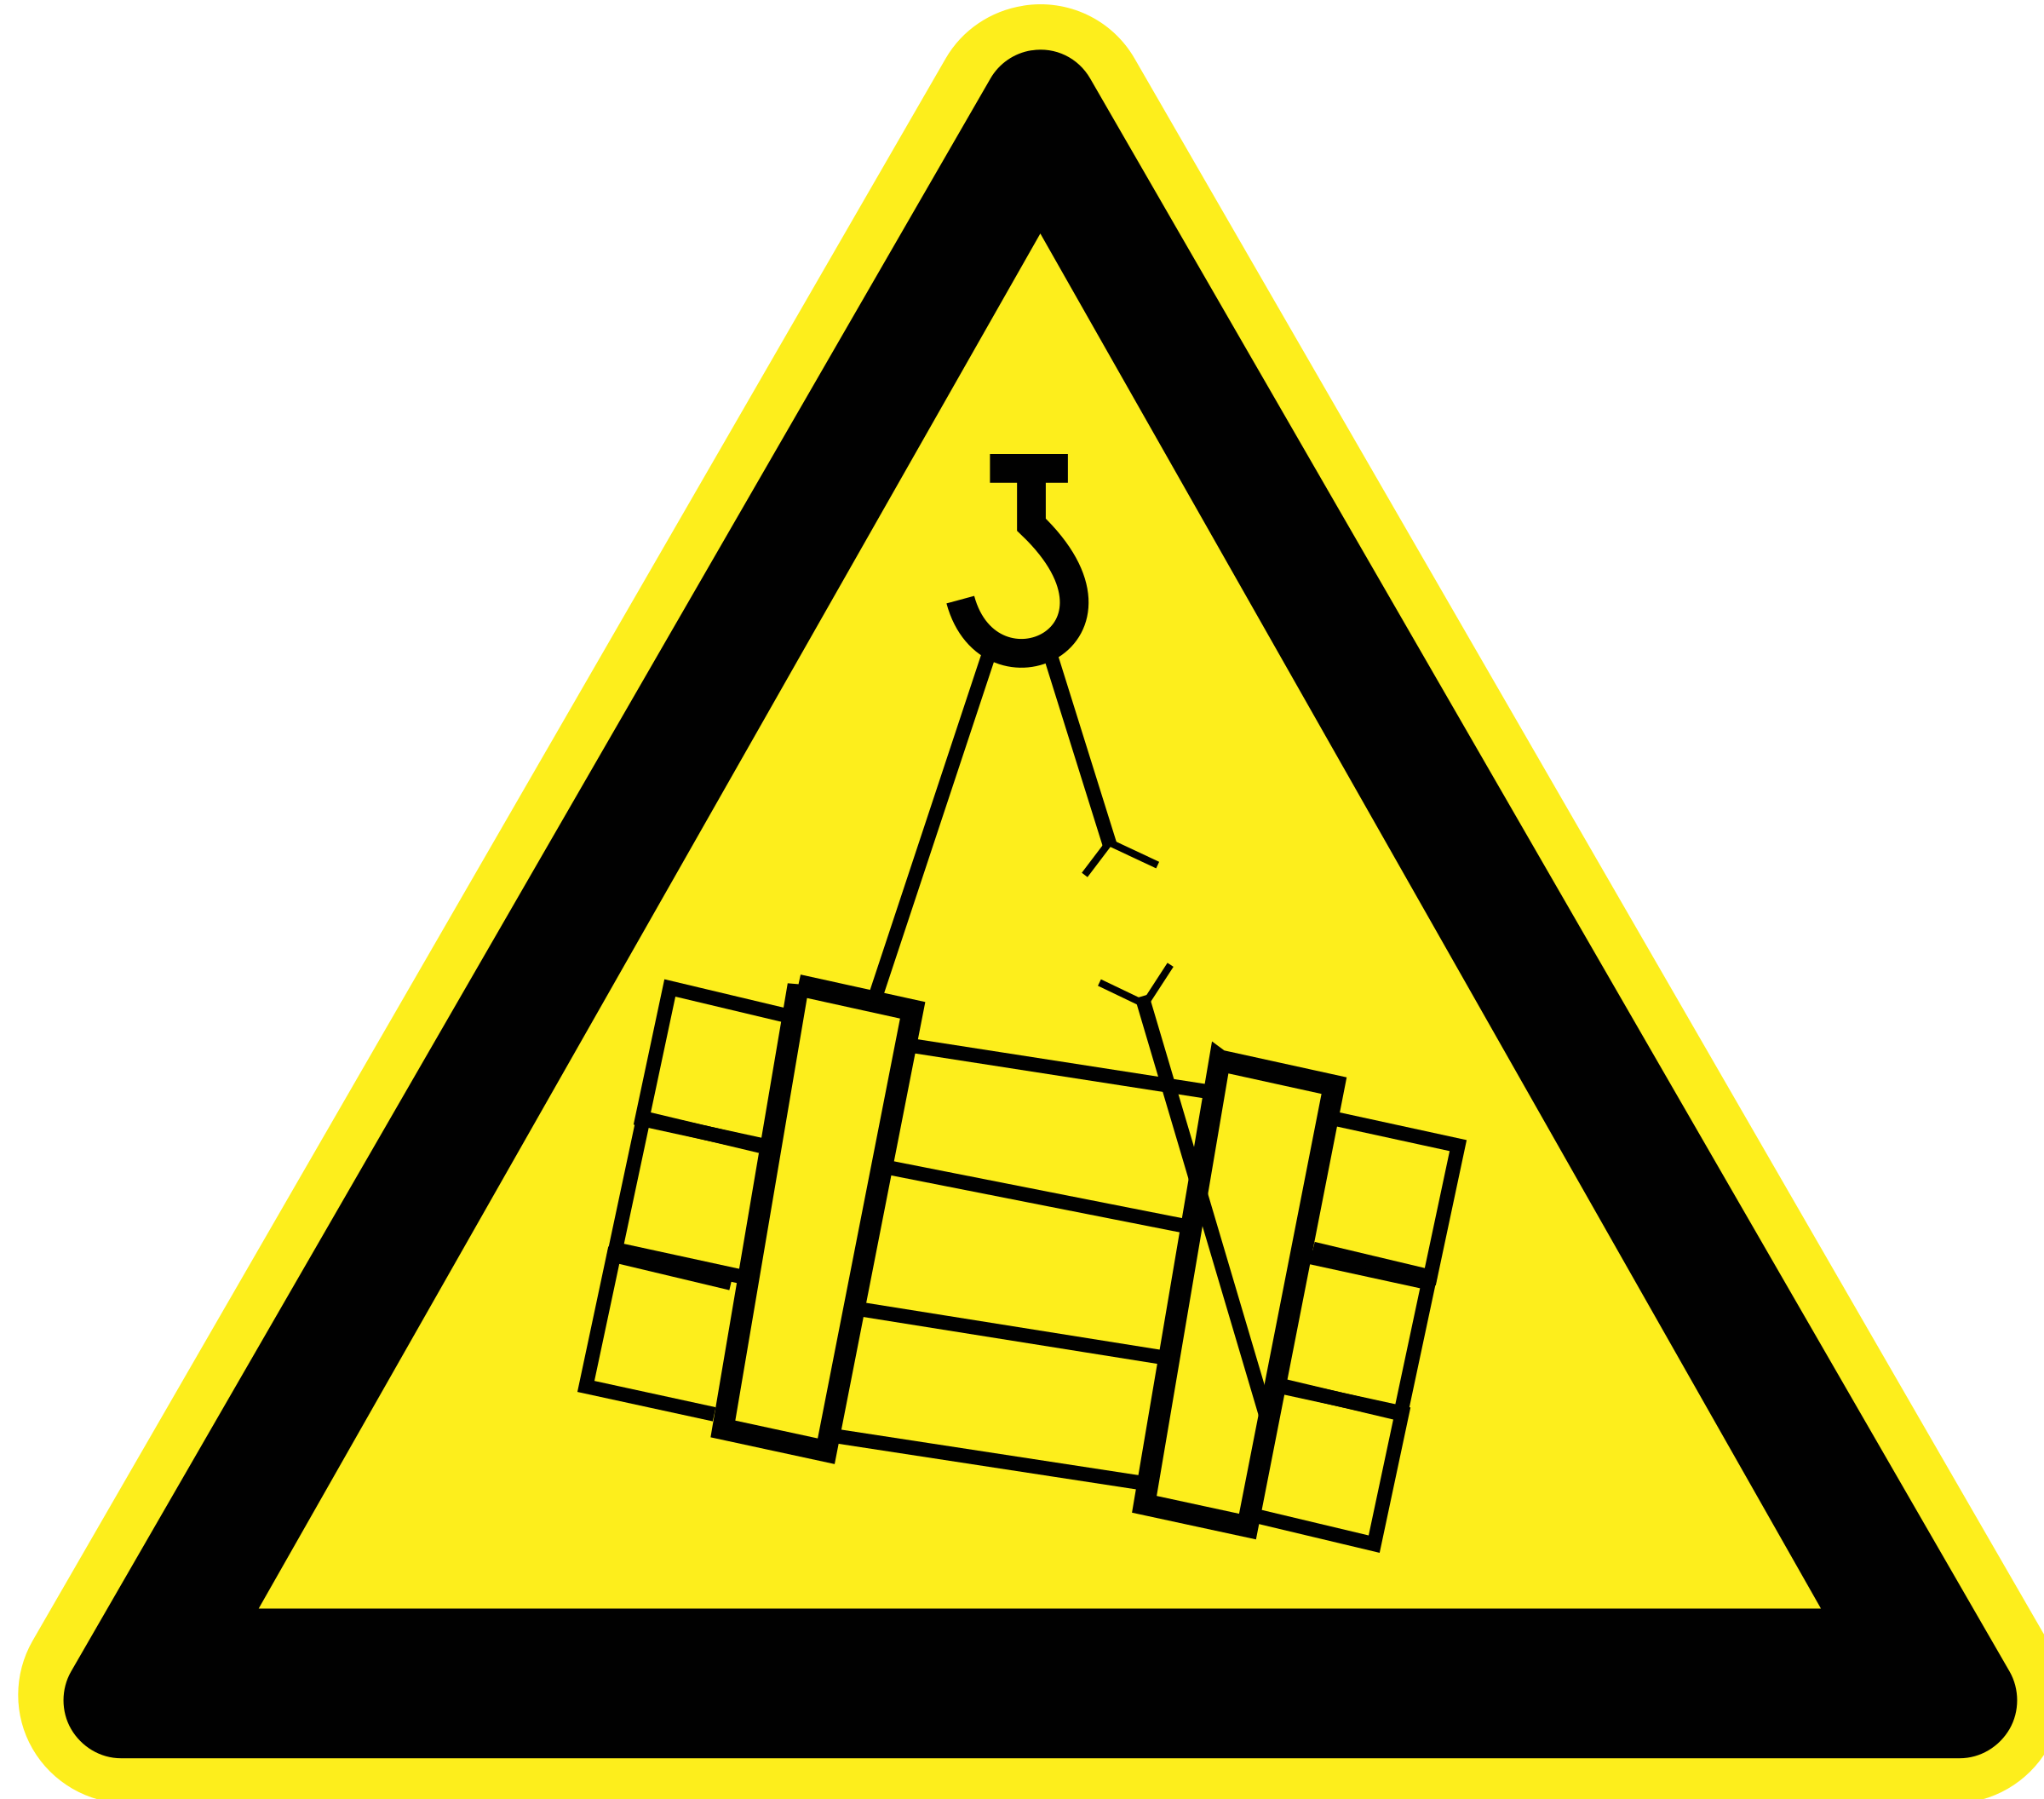 Signs Hazard Warning - falling cargo by h0us3s